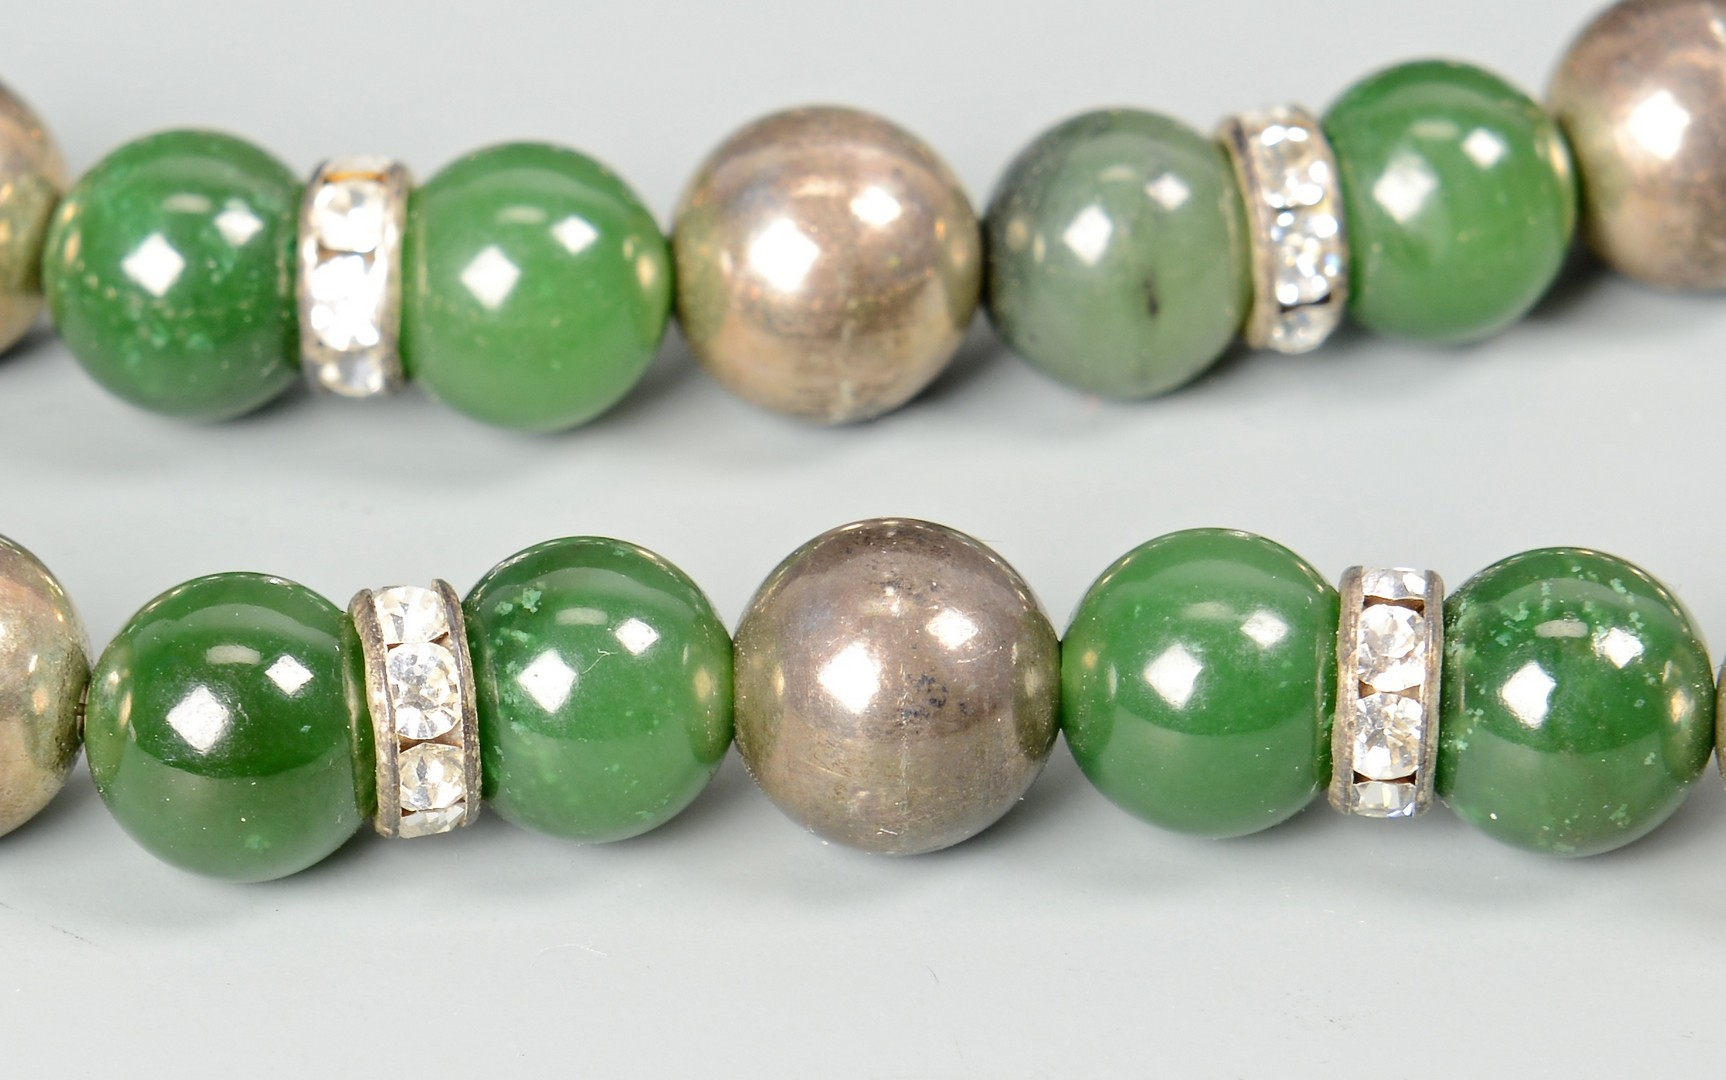 Lot 3832377: Green Jade Bead Necklace and 2 Bracelets